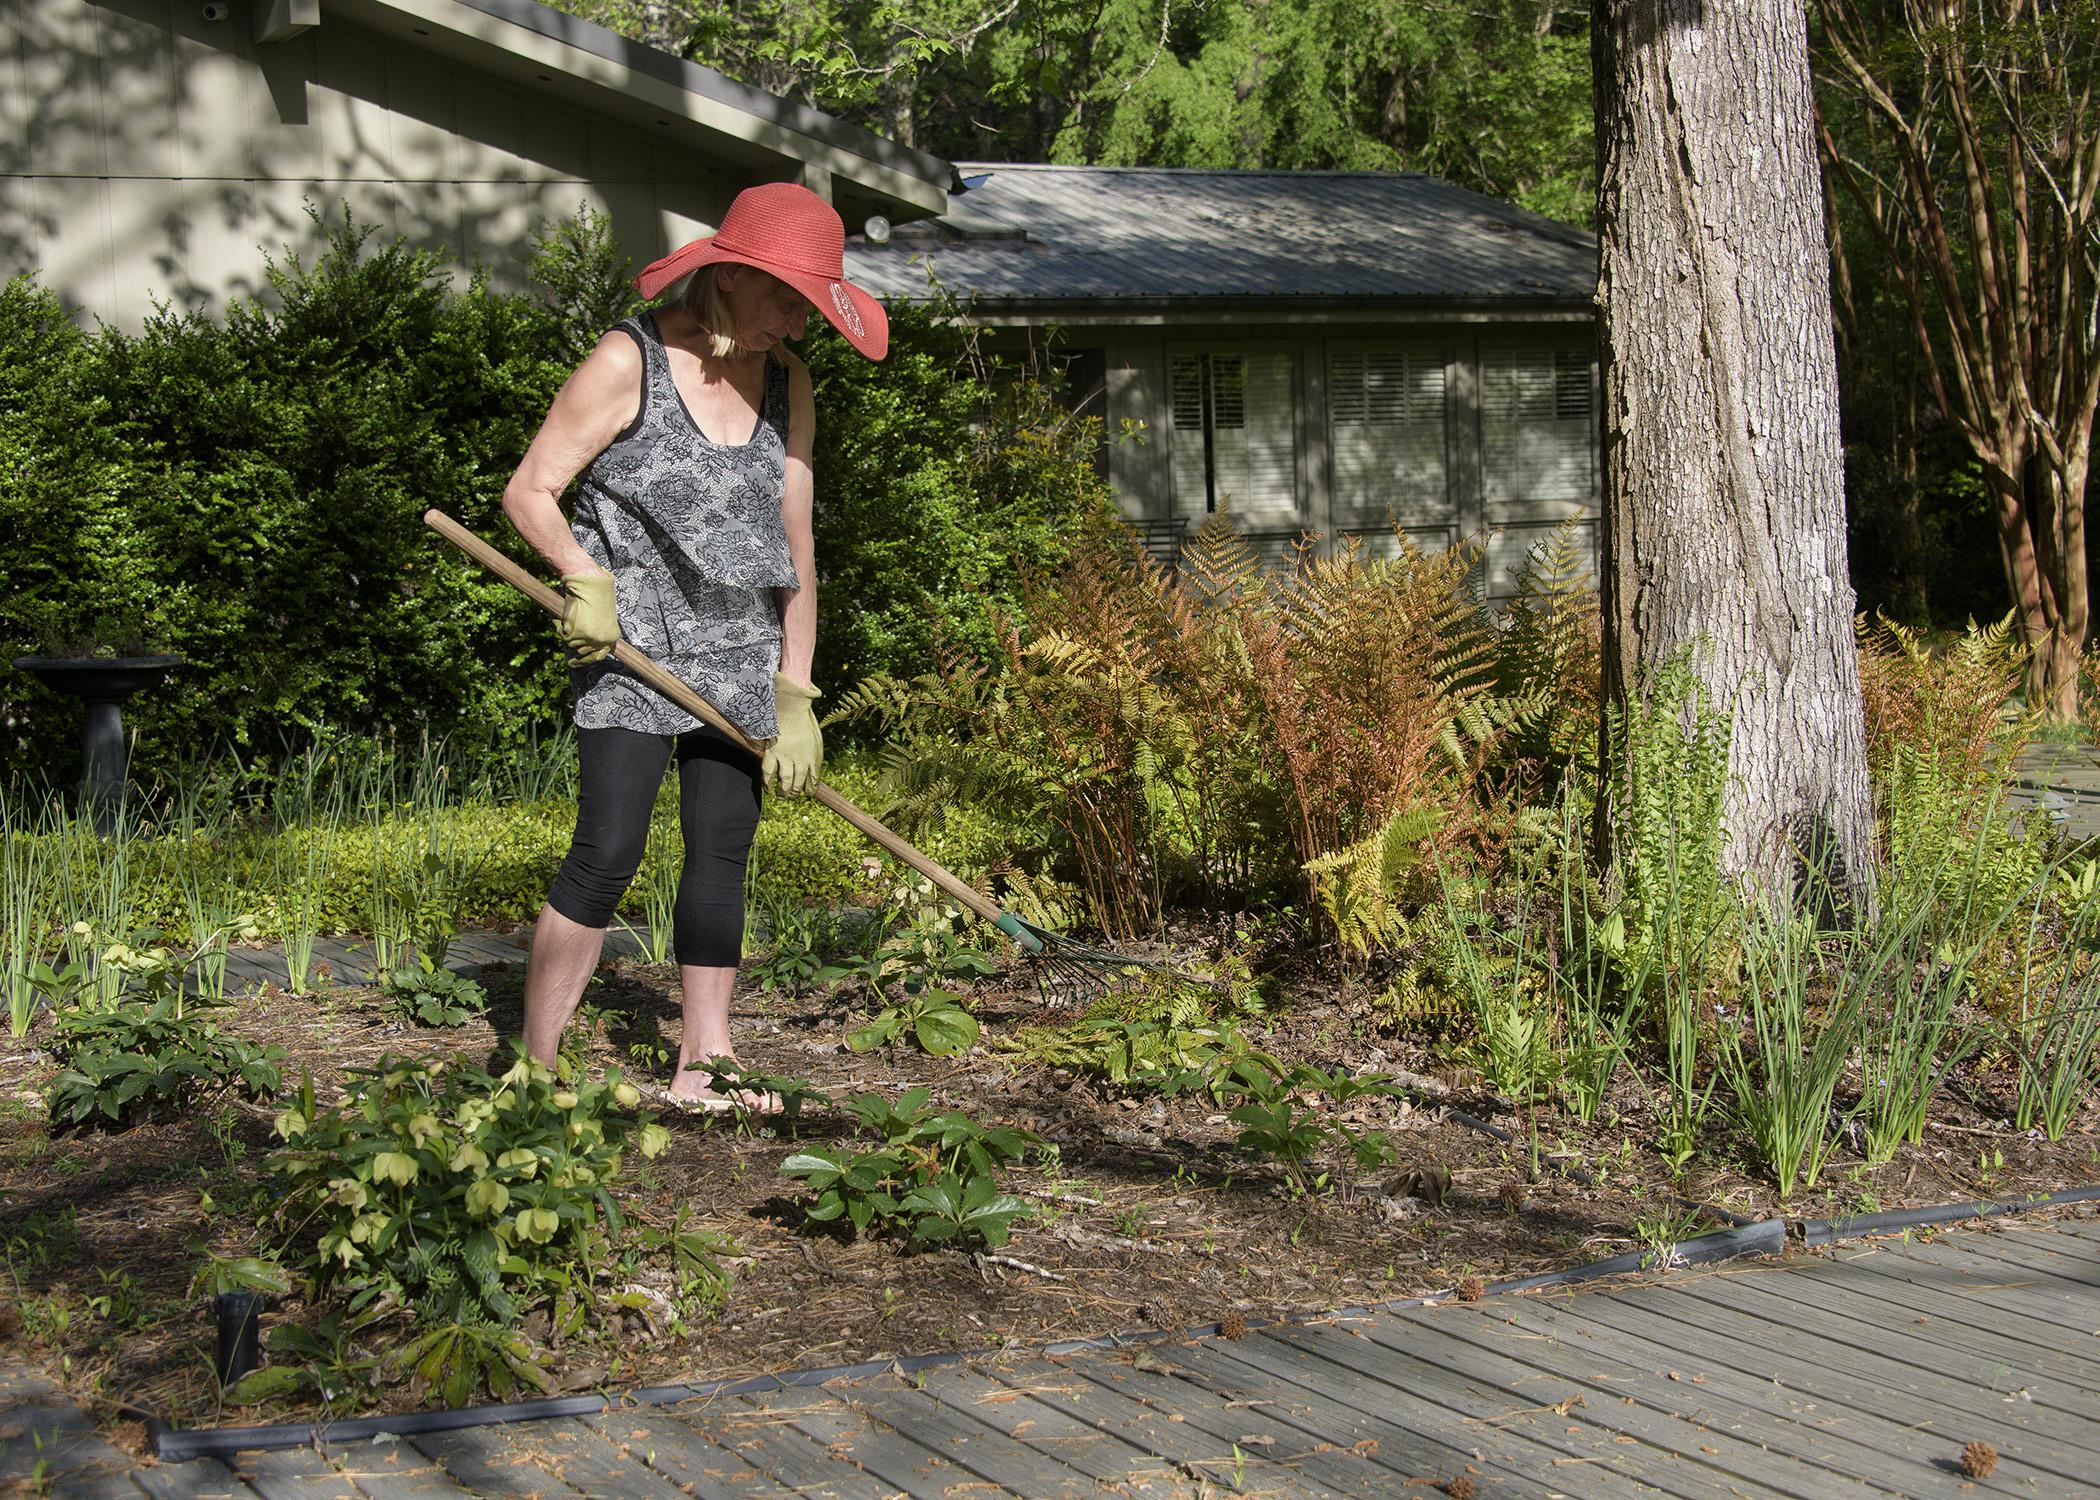 A woman uses a hoe to tend a flower bed.